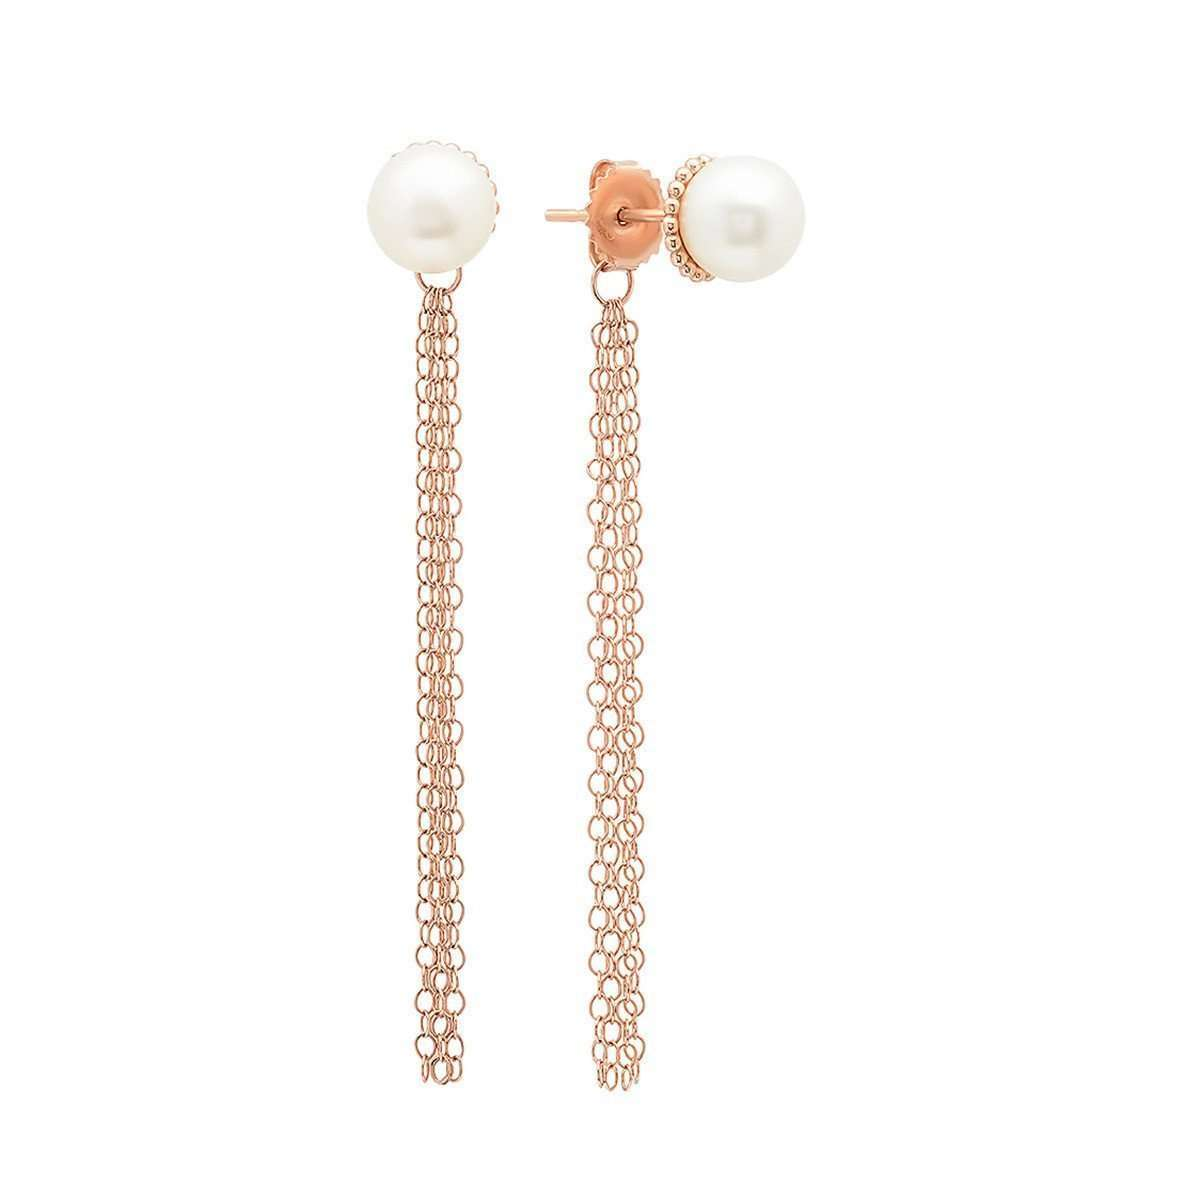 Victoria Six Cymbeline Wave Earrings aMVeJe